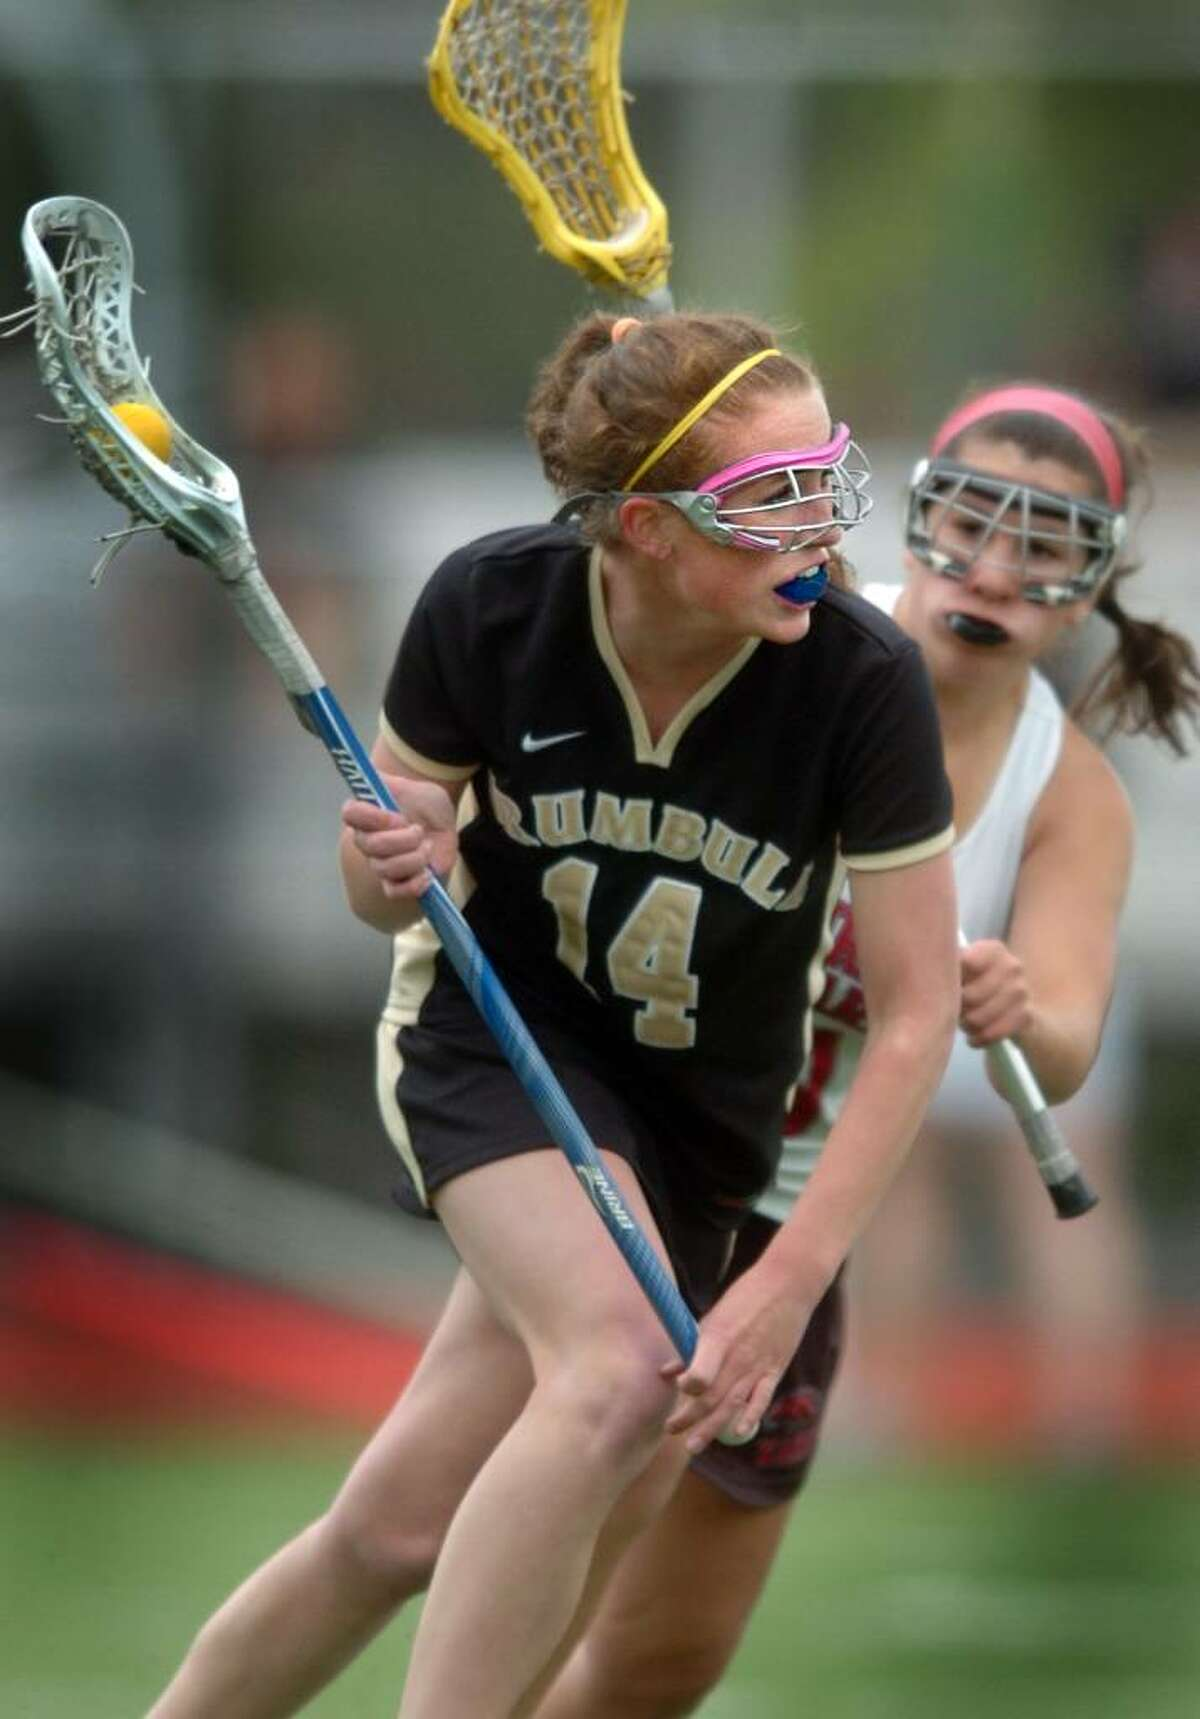 Trumbull's Mary Rose Rappa pushes past Fairfield Warde's Sophia Sophia Catandella Wednesday Apr. 28, 2010 during their lacrosse match in Fairfield.